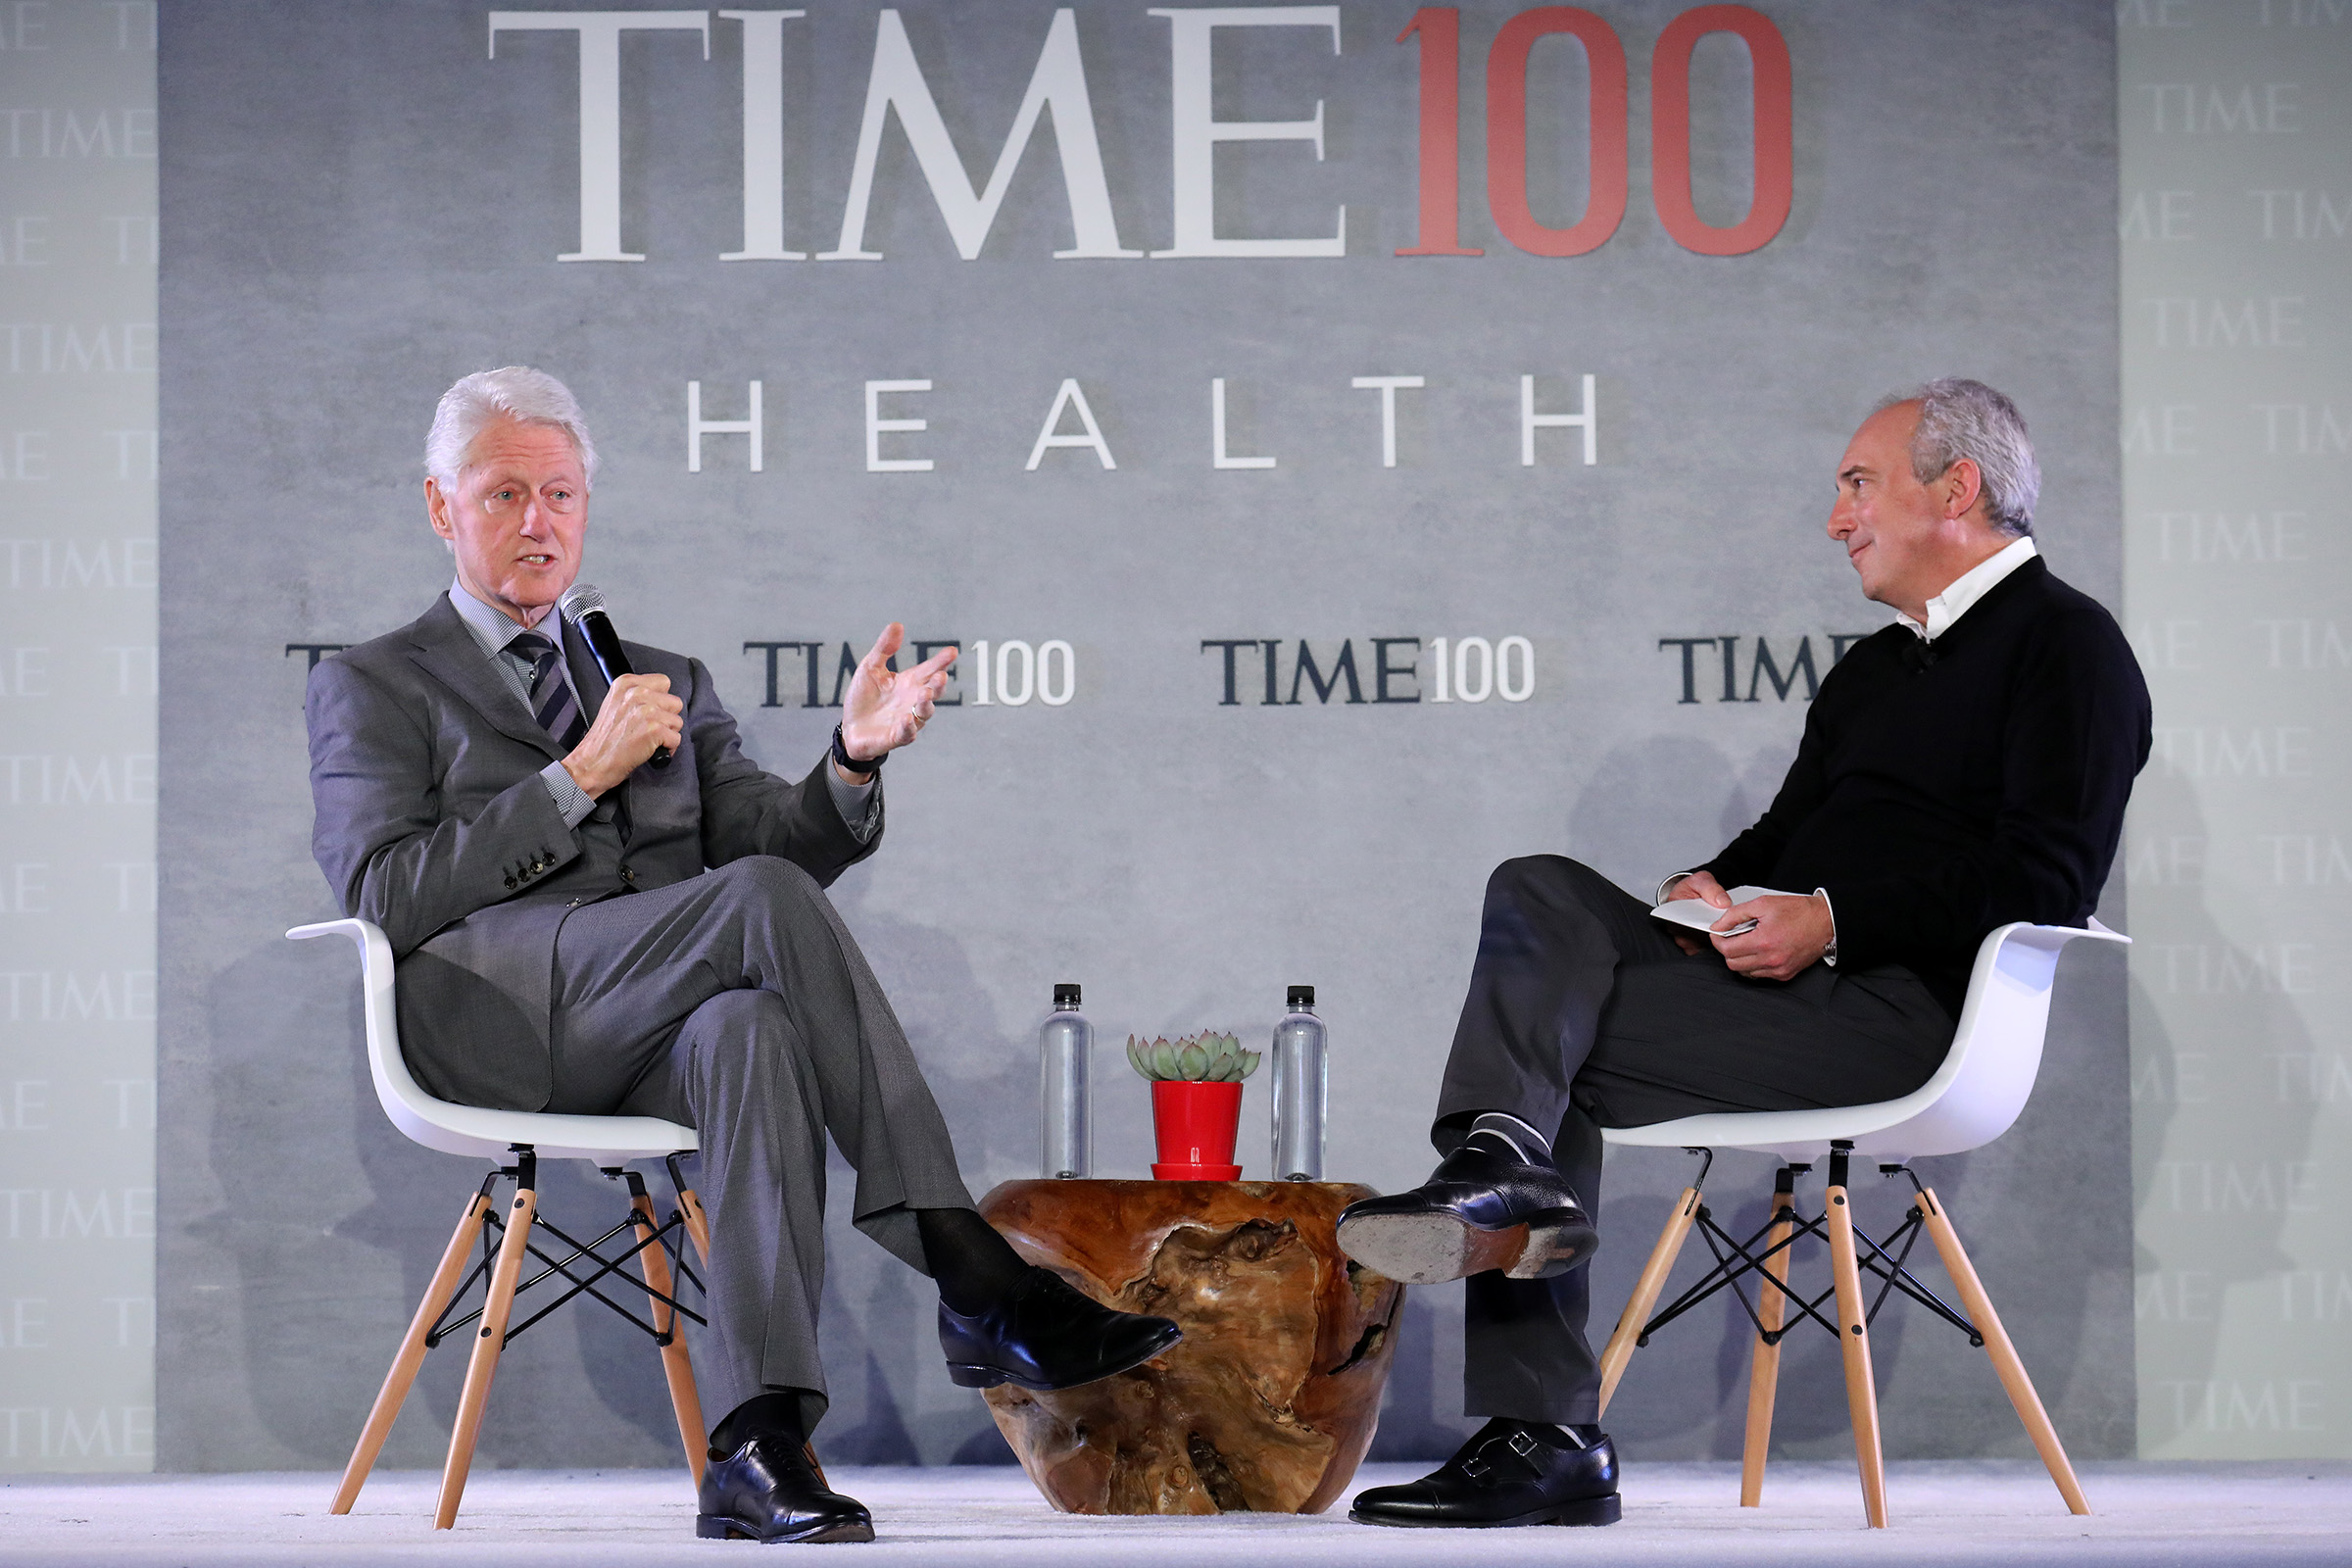 Former U.S. President Bill Clinton (L) speaks with CEO of the Lawrence J. Ellison Institute for Transformative.Medicine of USC and TIME 100 Health Summit Co-Chair, Dr. David Agus, onstage during the TIME 100 Health Summit at Pier 17 in New York City on Oct. 17, 2019.